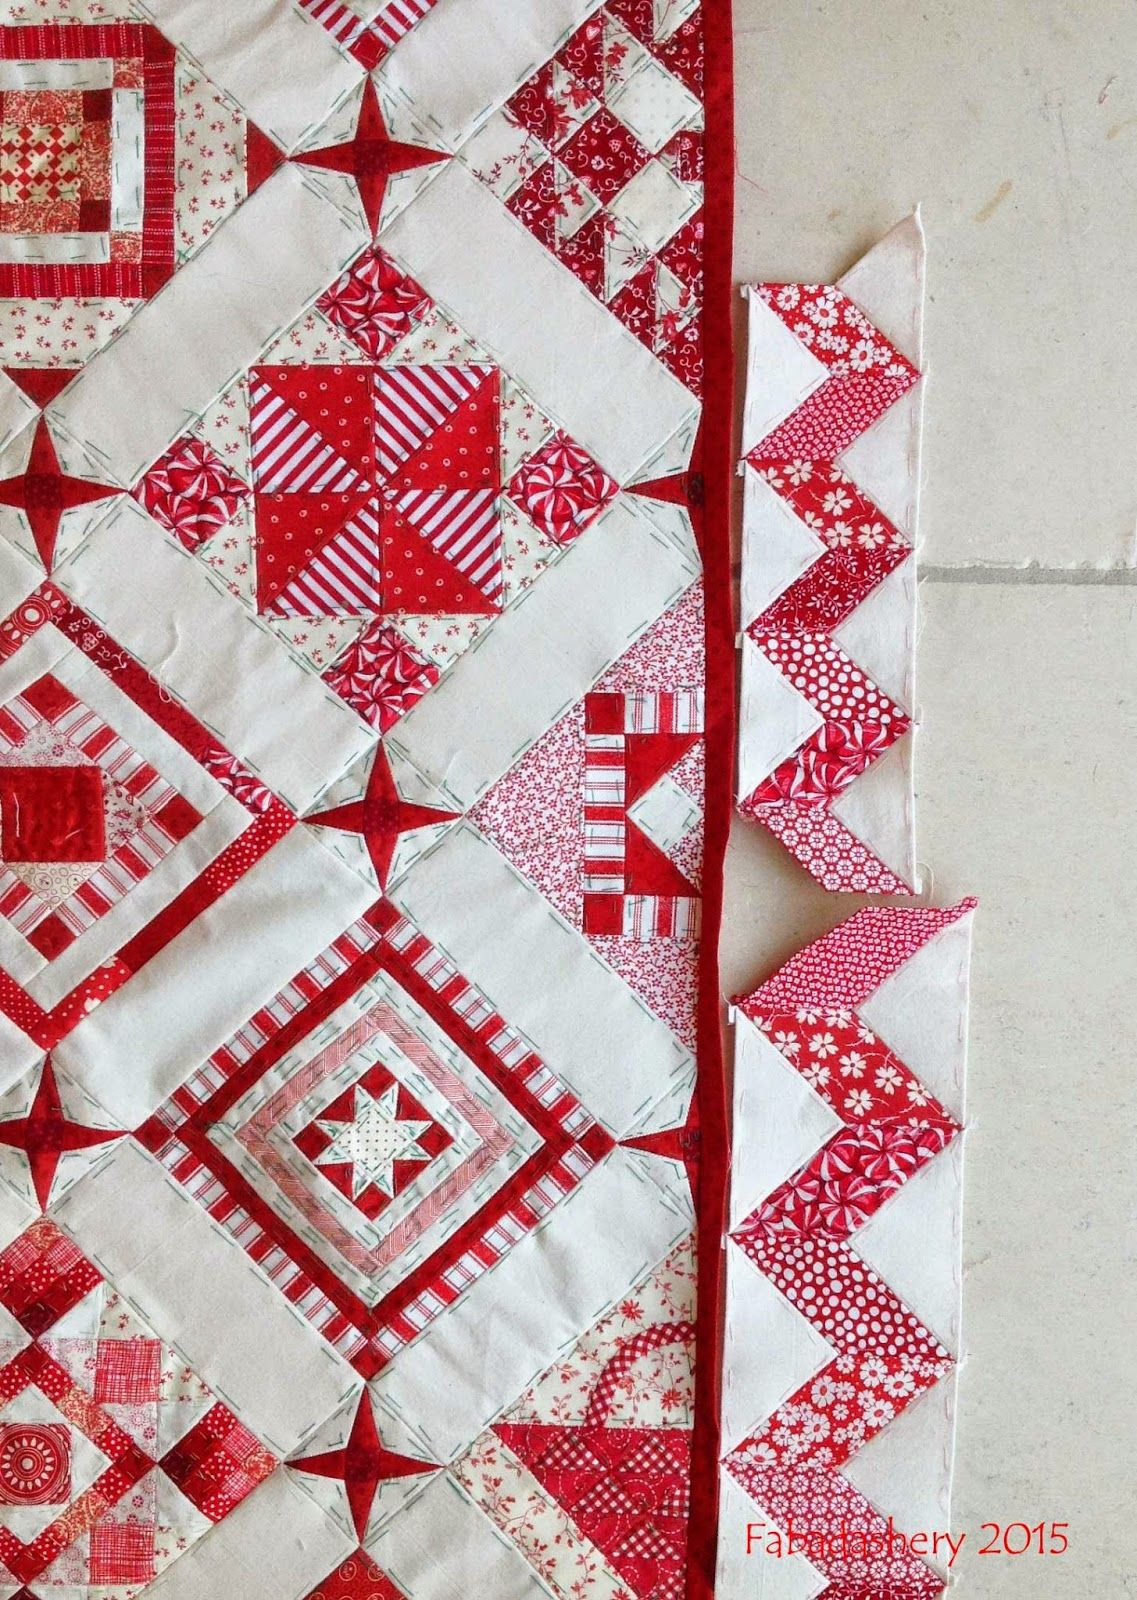 Nearly insane quilt small red with white zig zag border all epp